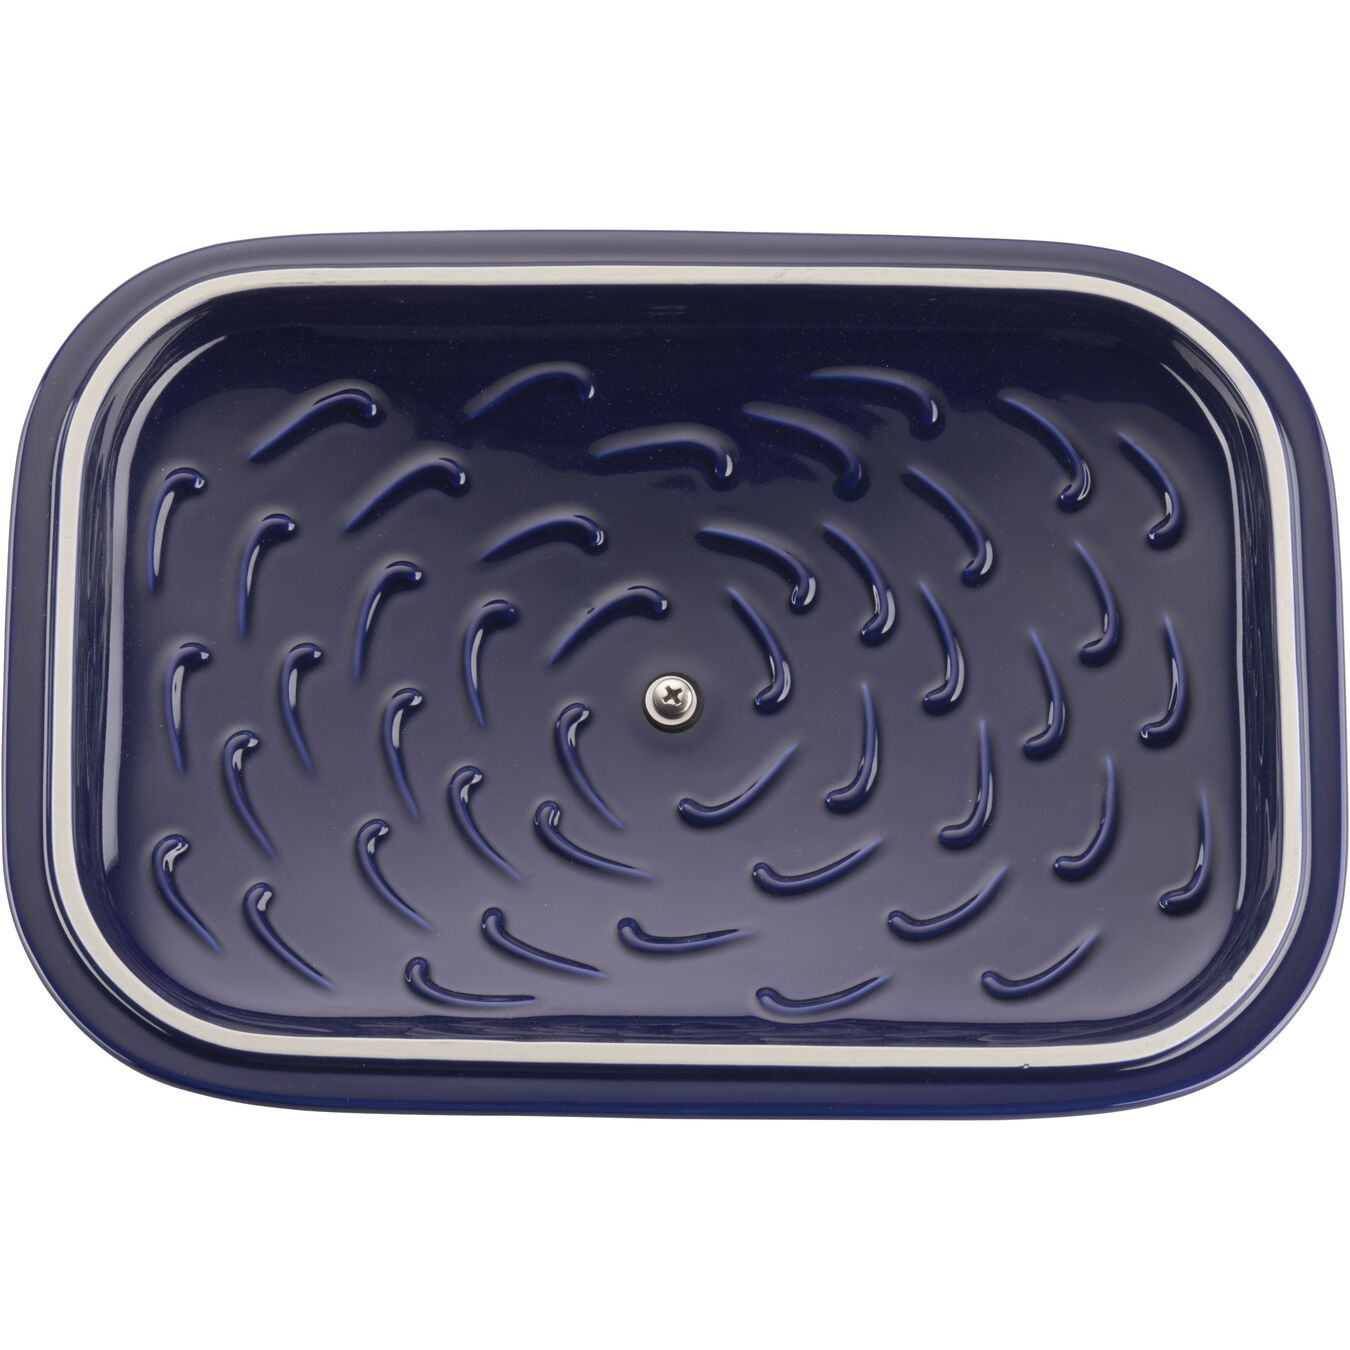 12-inch x 8-inch Rectangular Covered Baking Dish - Dark Blue,,large 3